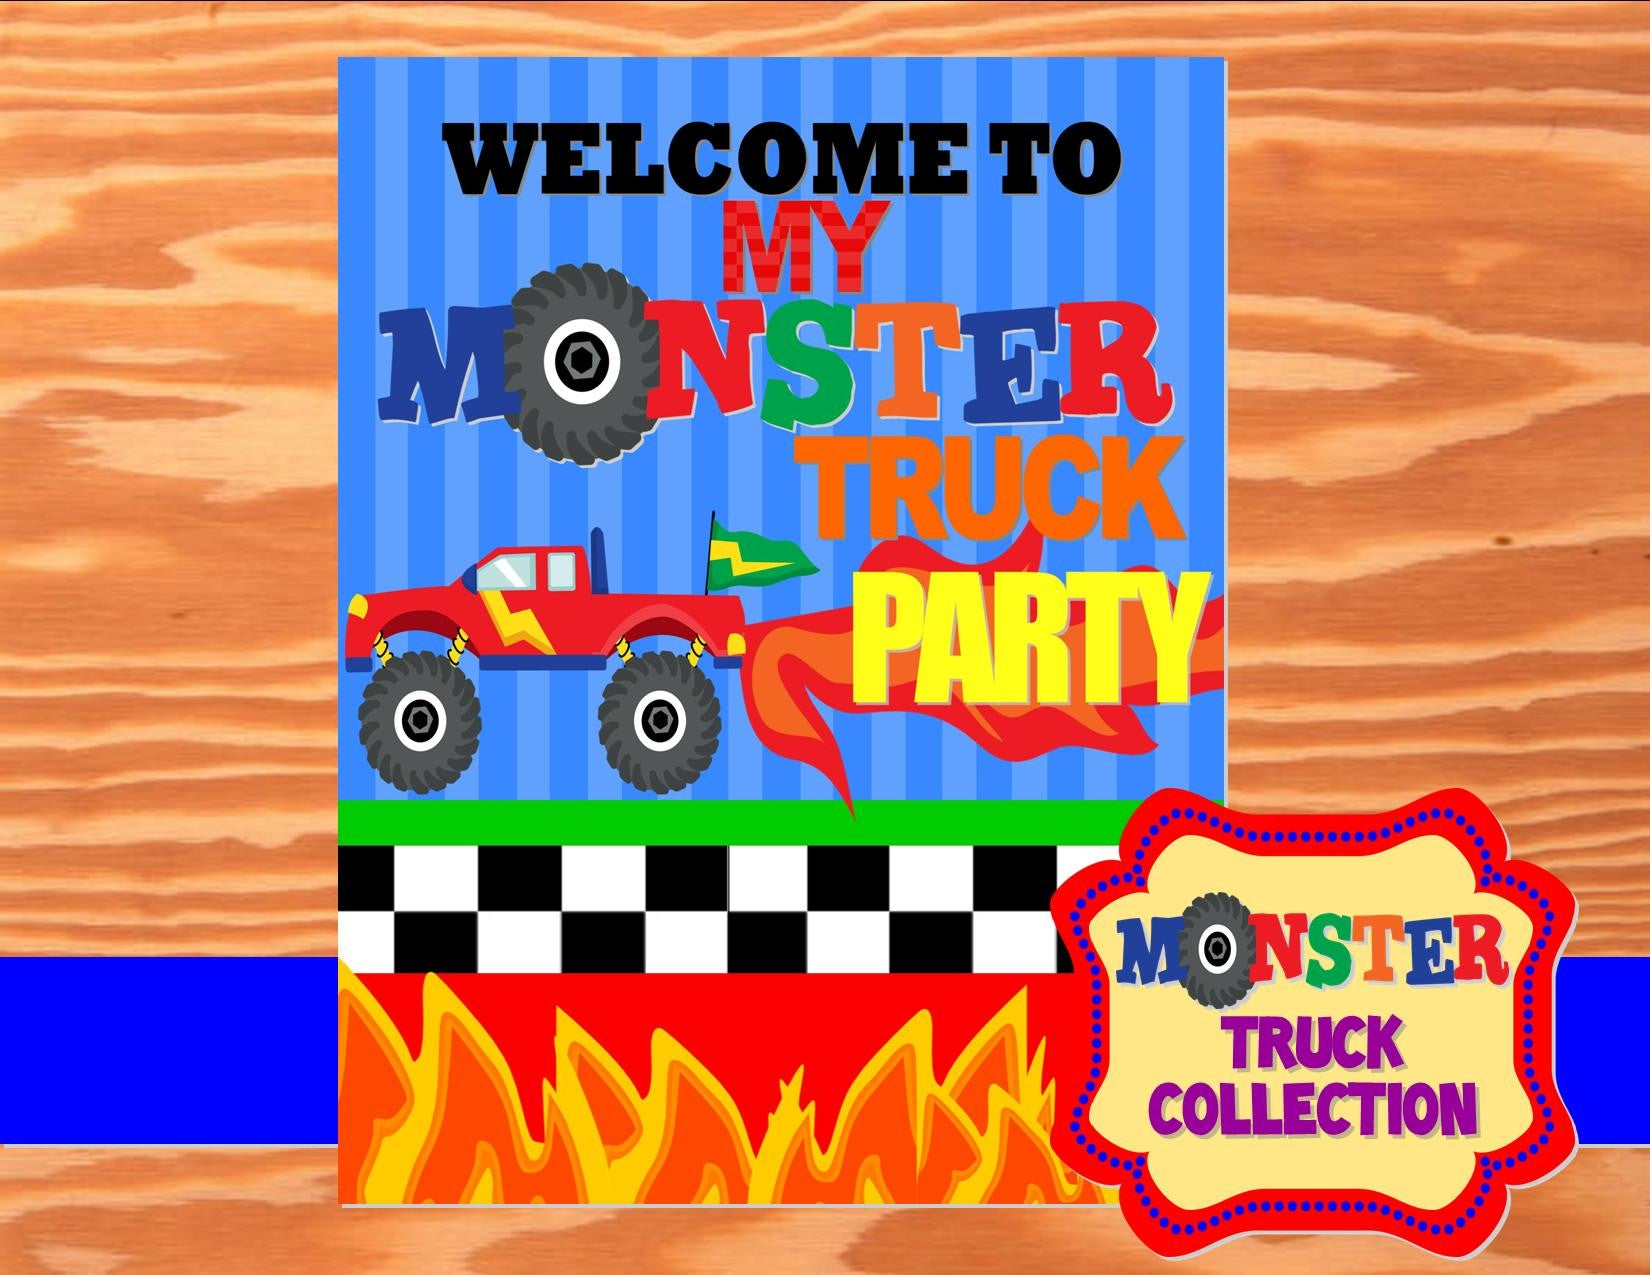 MONSTER Truck - Monster Truck WELCOME SIGN - Truck Party